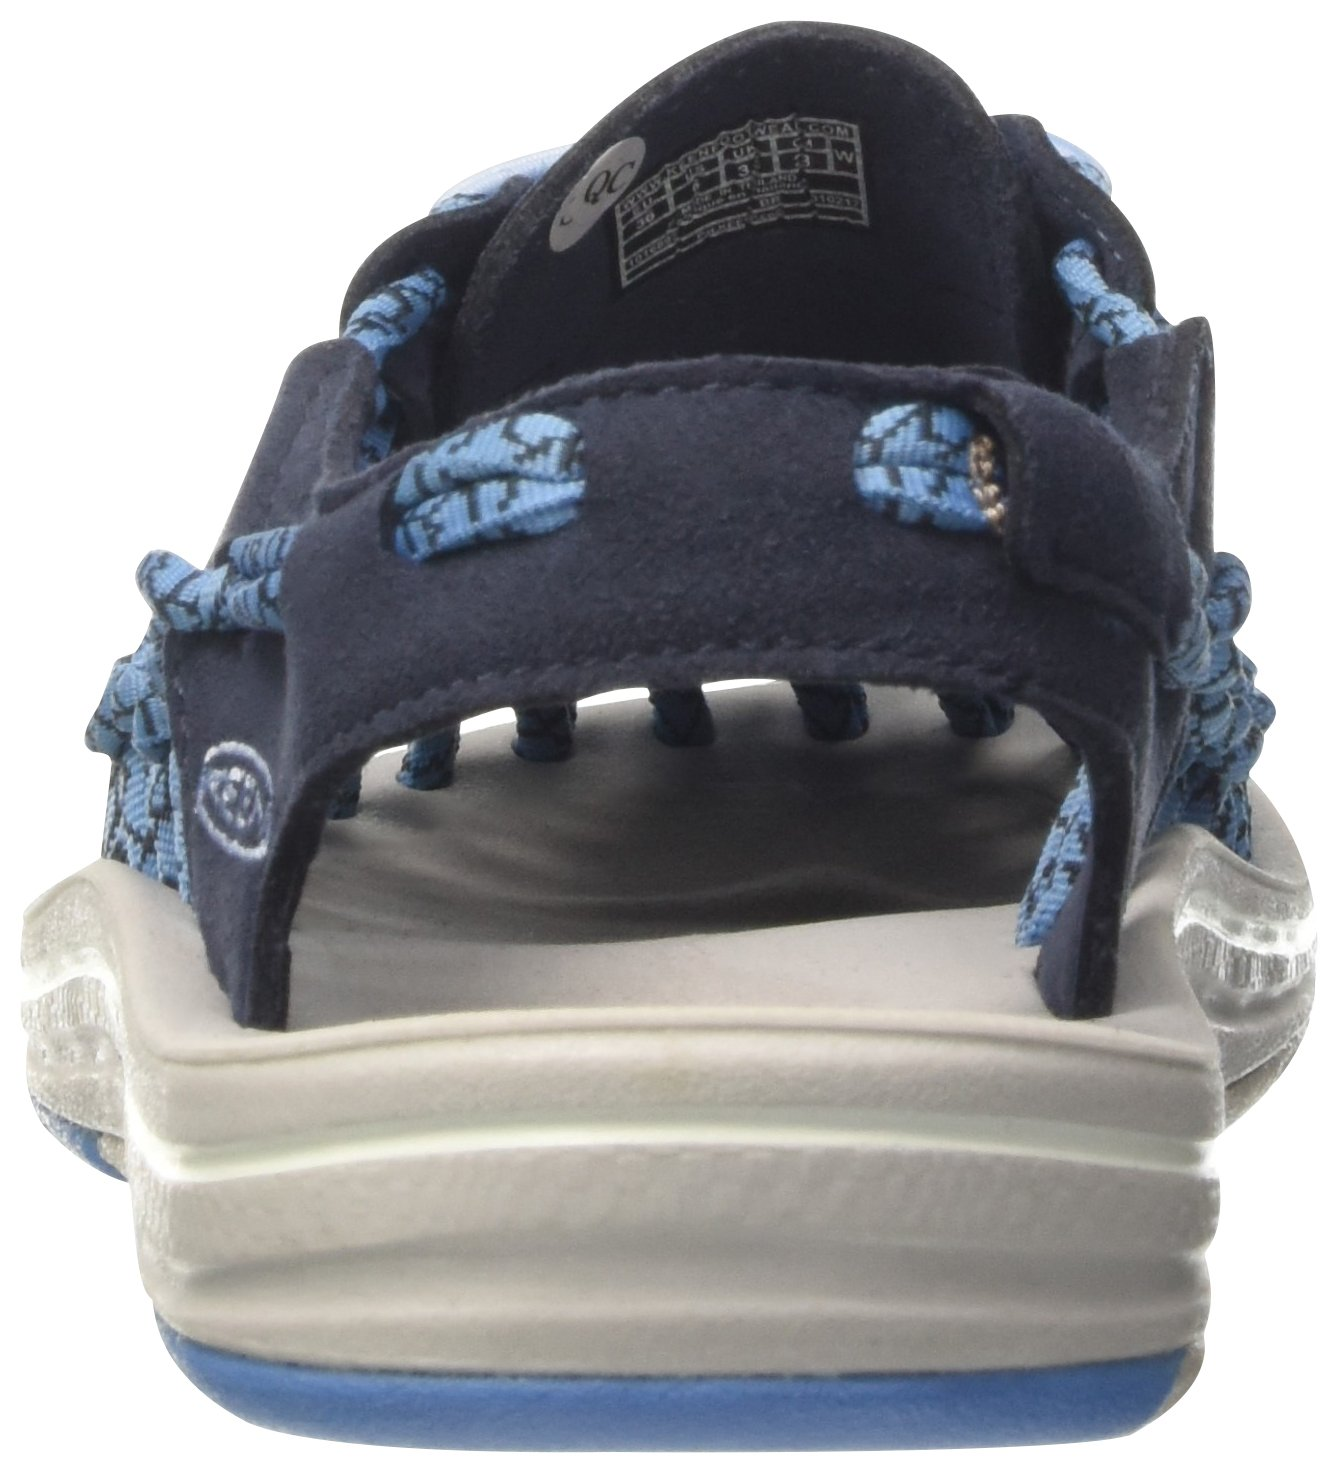 KEEN Women's Uneek-W Sandal B01H8H3VS0 11 B(M) US|Midnight Navy/Cendre Blue